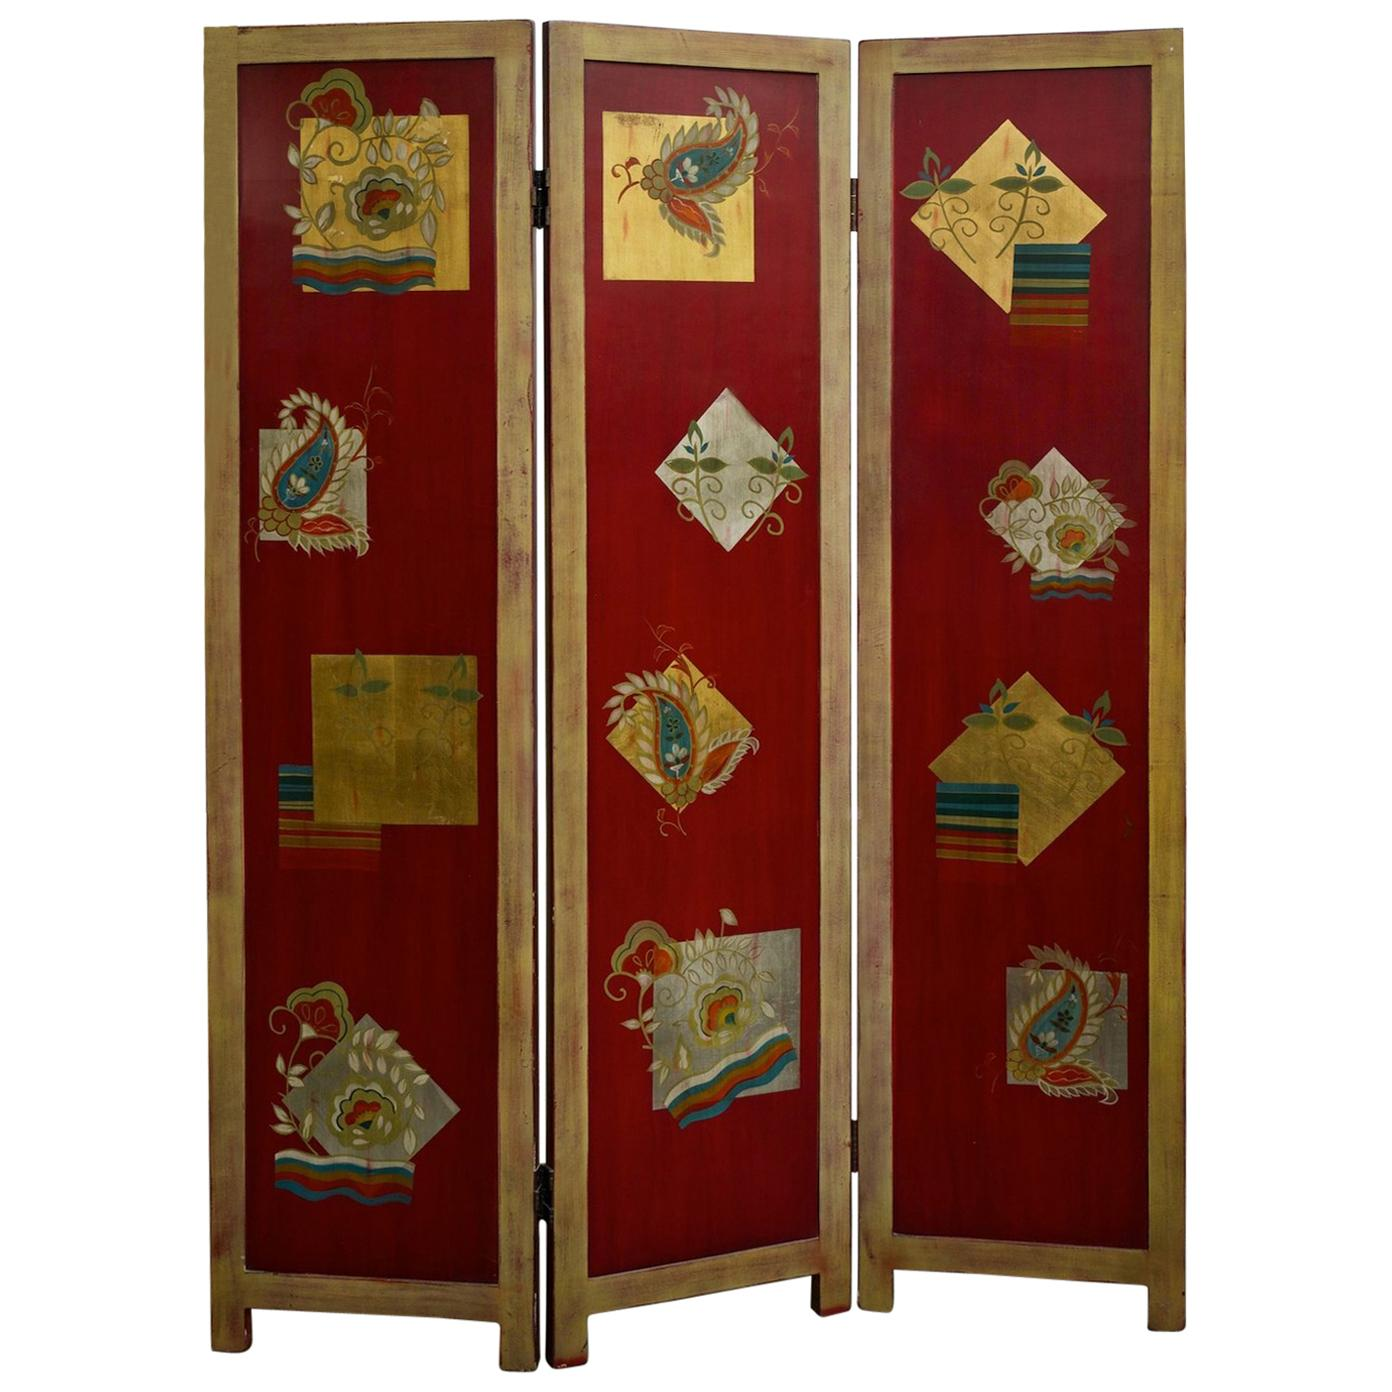 1920s Three-Panel Folding Screen